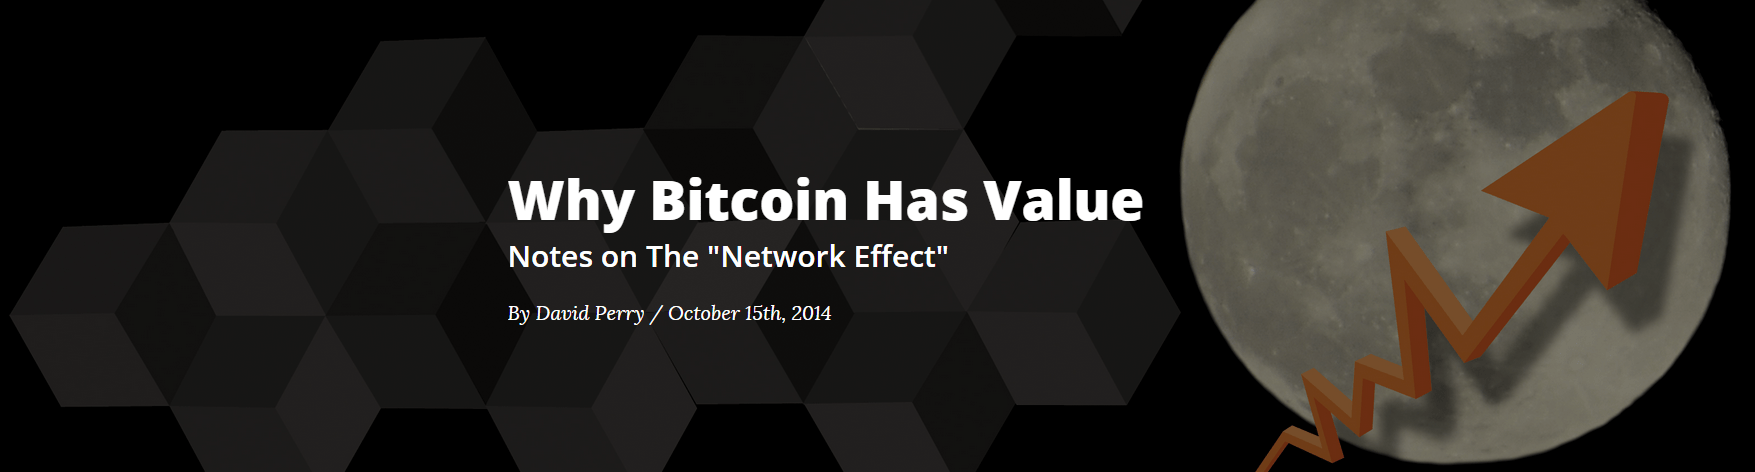 2015-01-24 00-22-48 yBitcoin.com   Why Bitcoin Has Value  Notes on The  Network Effect  — Google Chrome